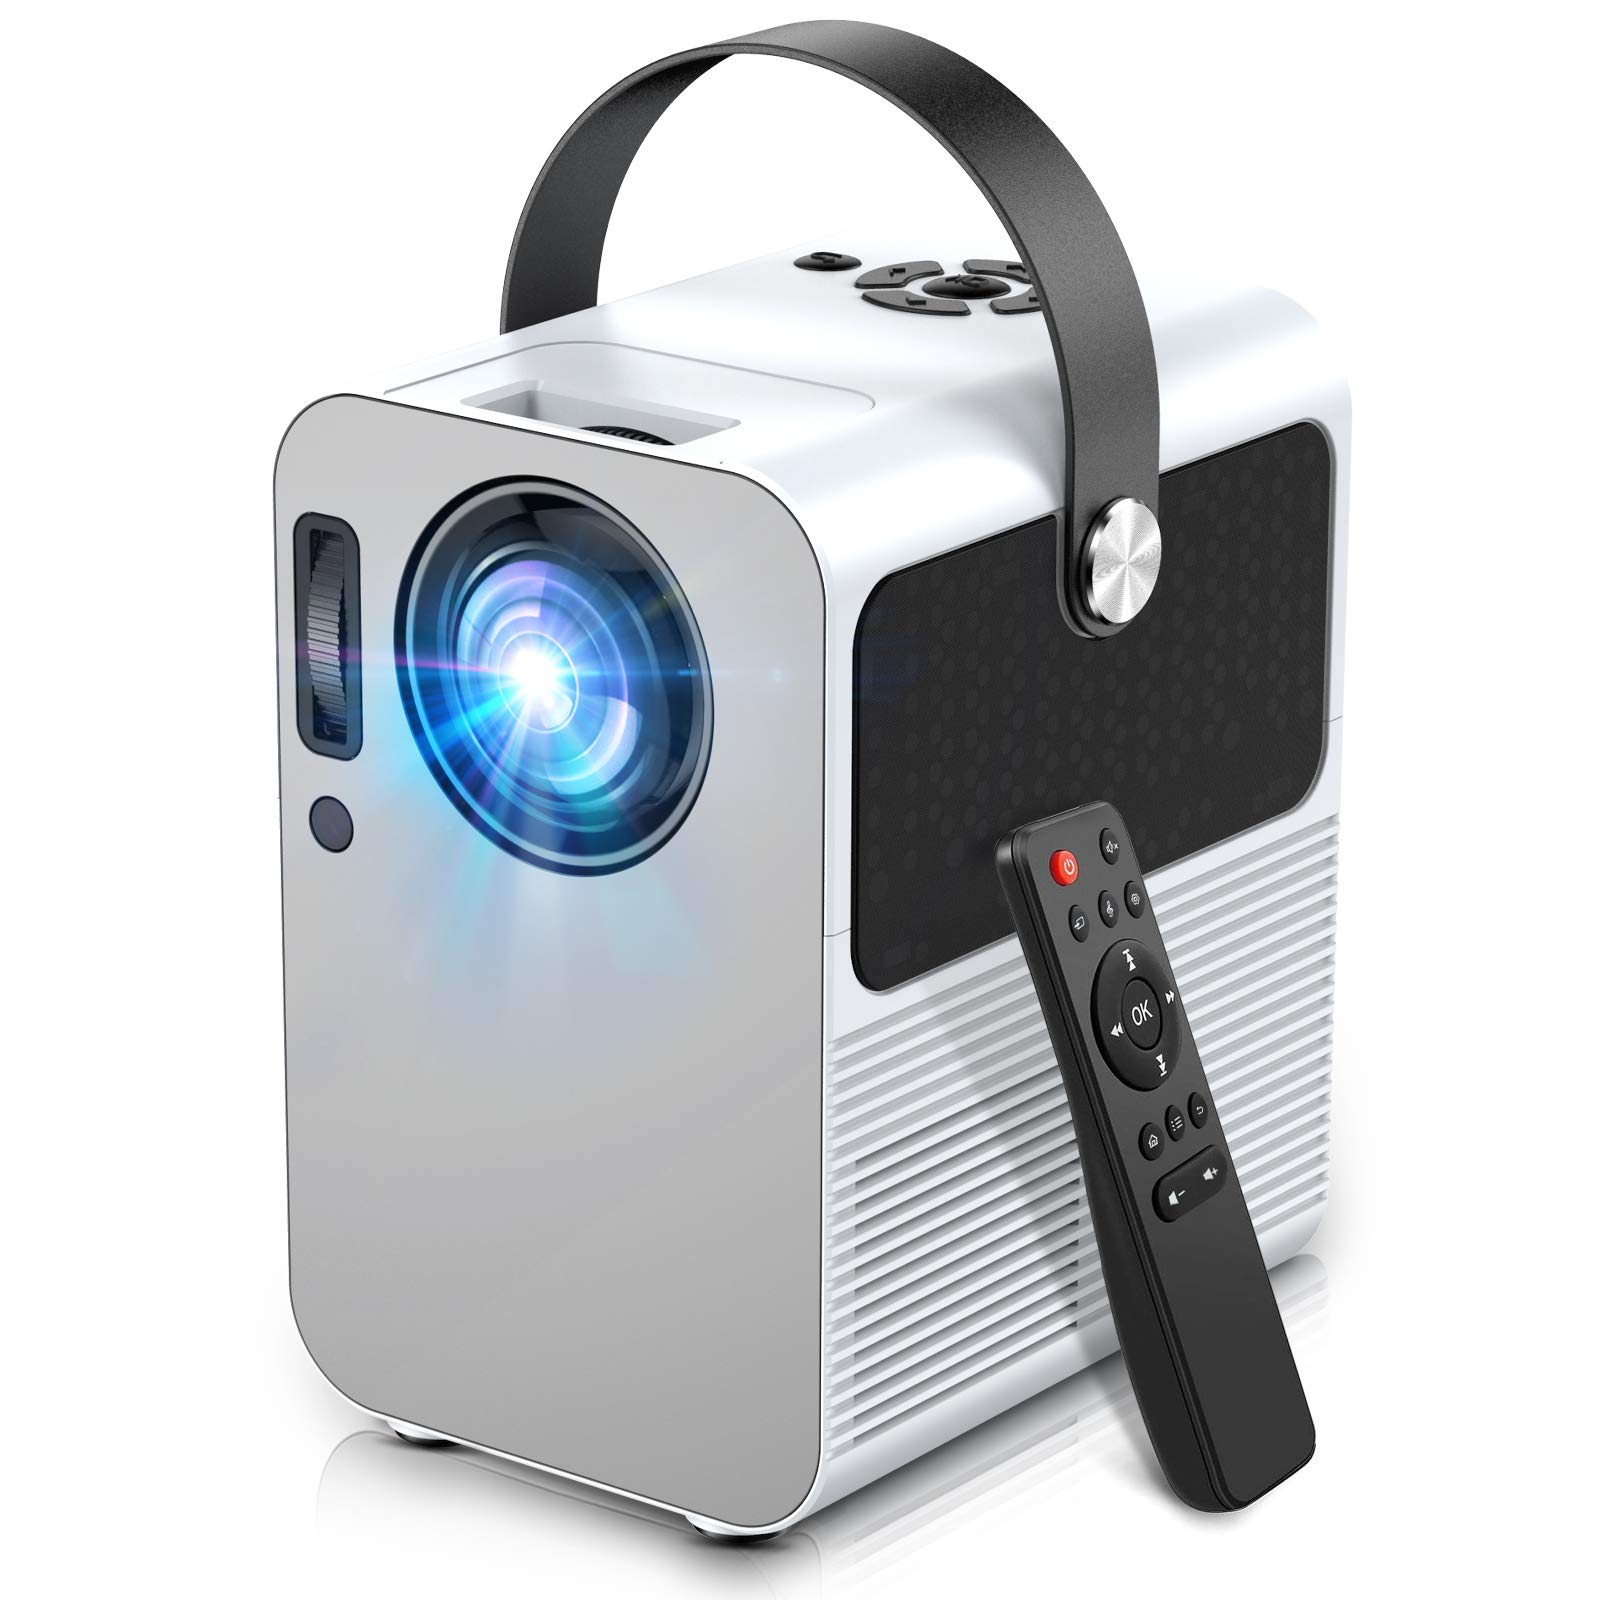 Mini Projector Portable Video Projector Full HD 1080P Supported with 5500 Lux